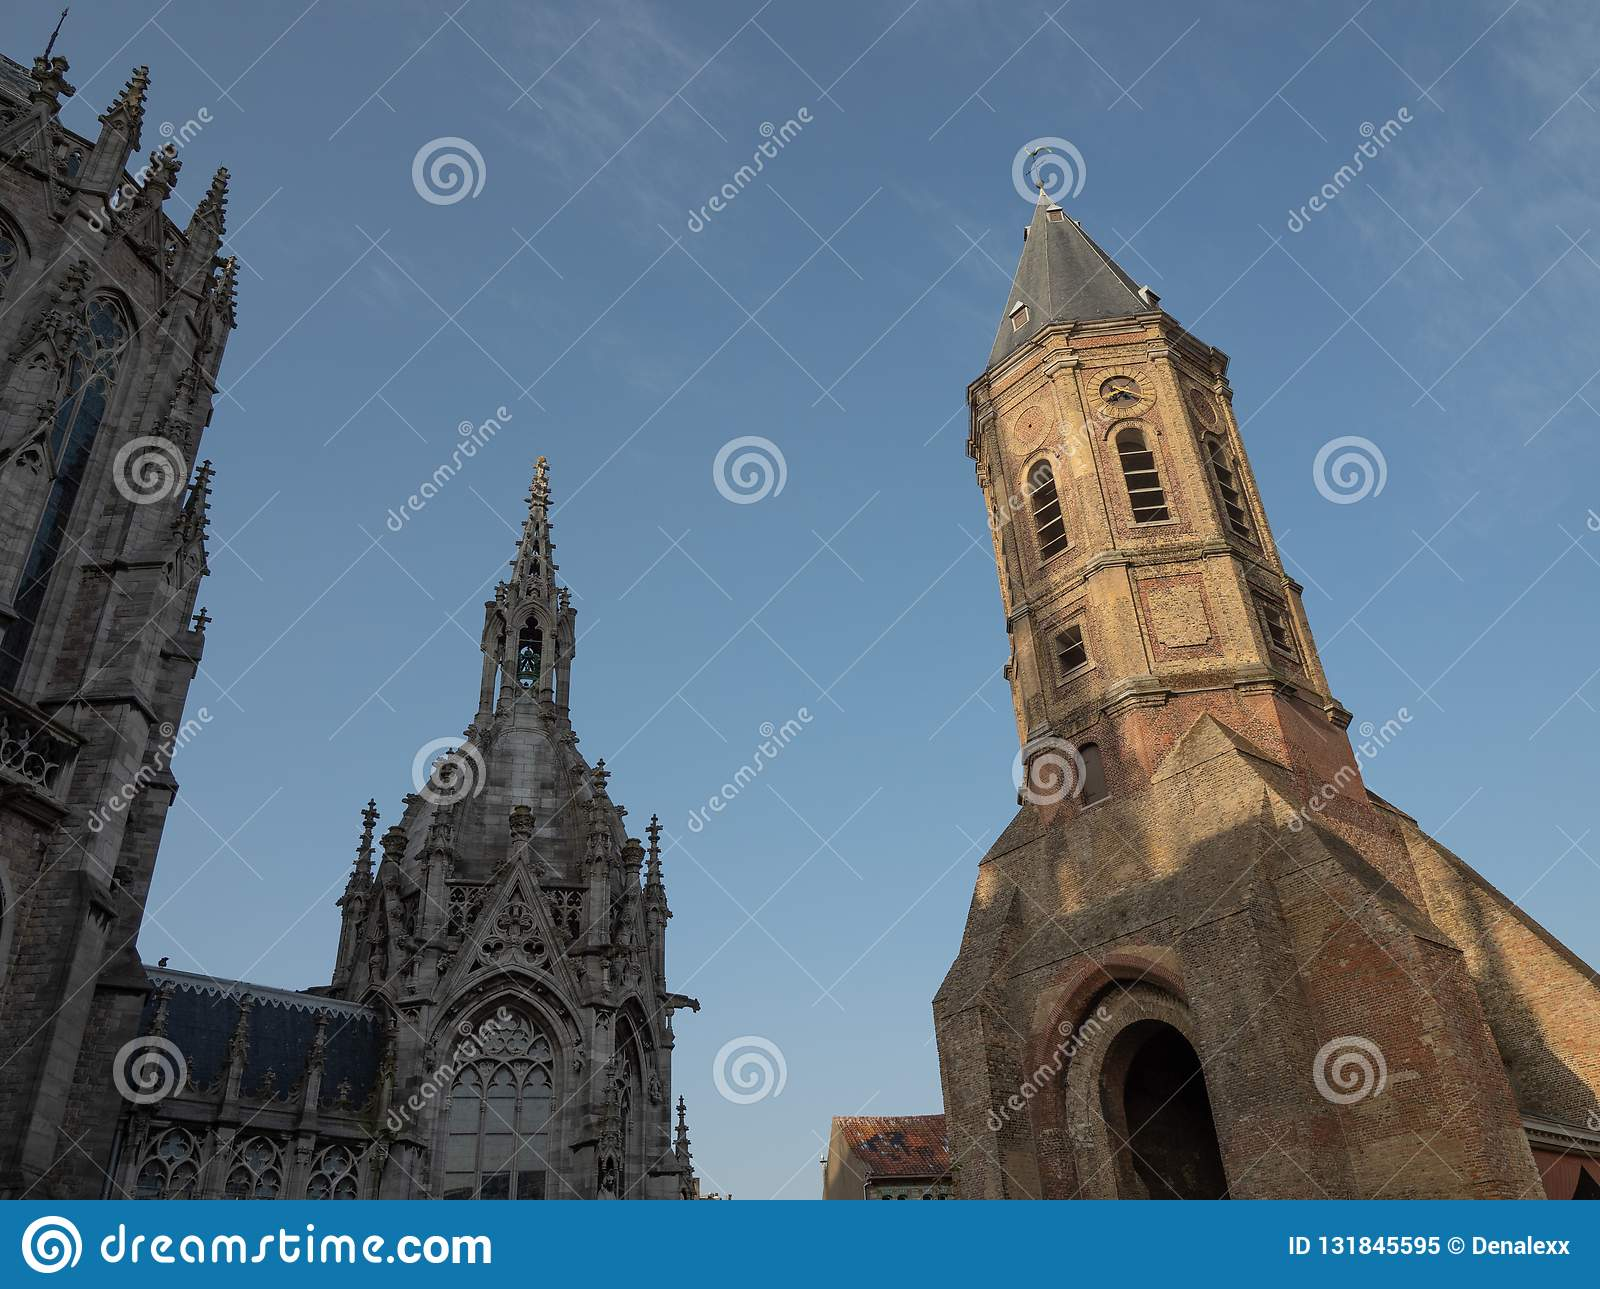 Both towers of St. Peter and Paul`s church and St. Peter`s tower